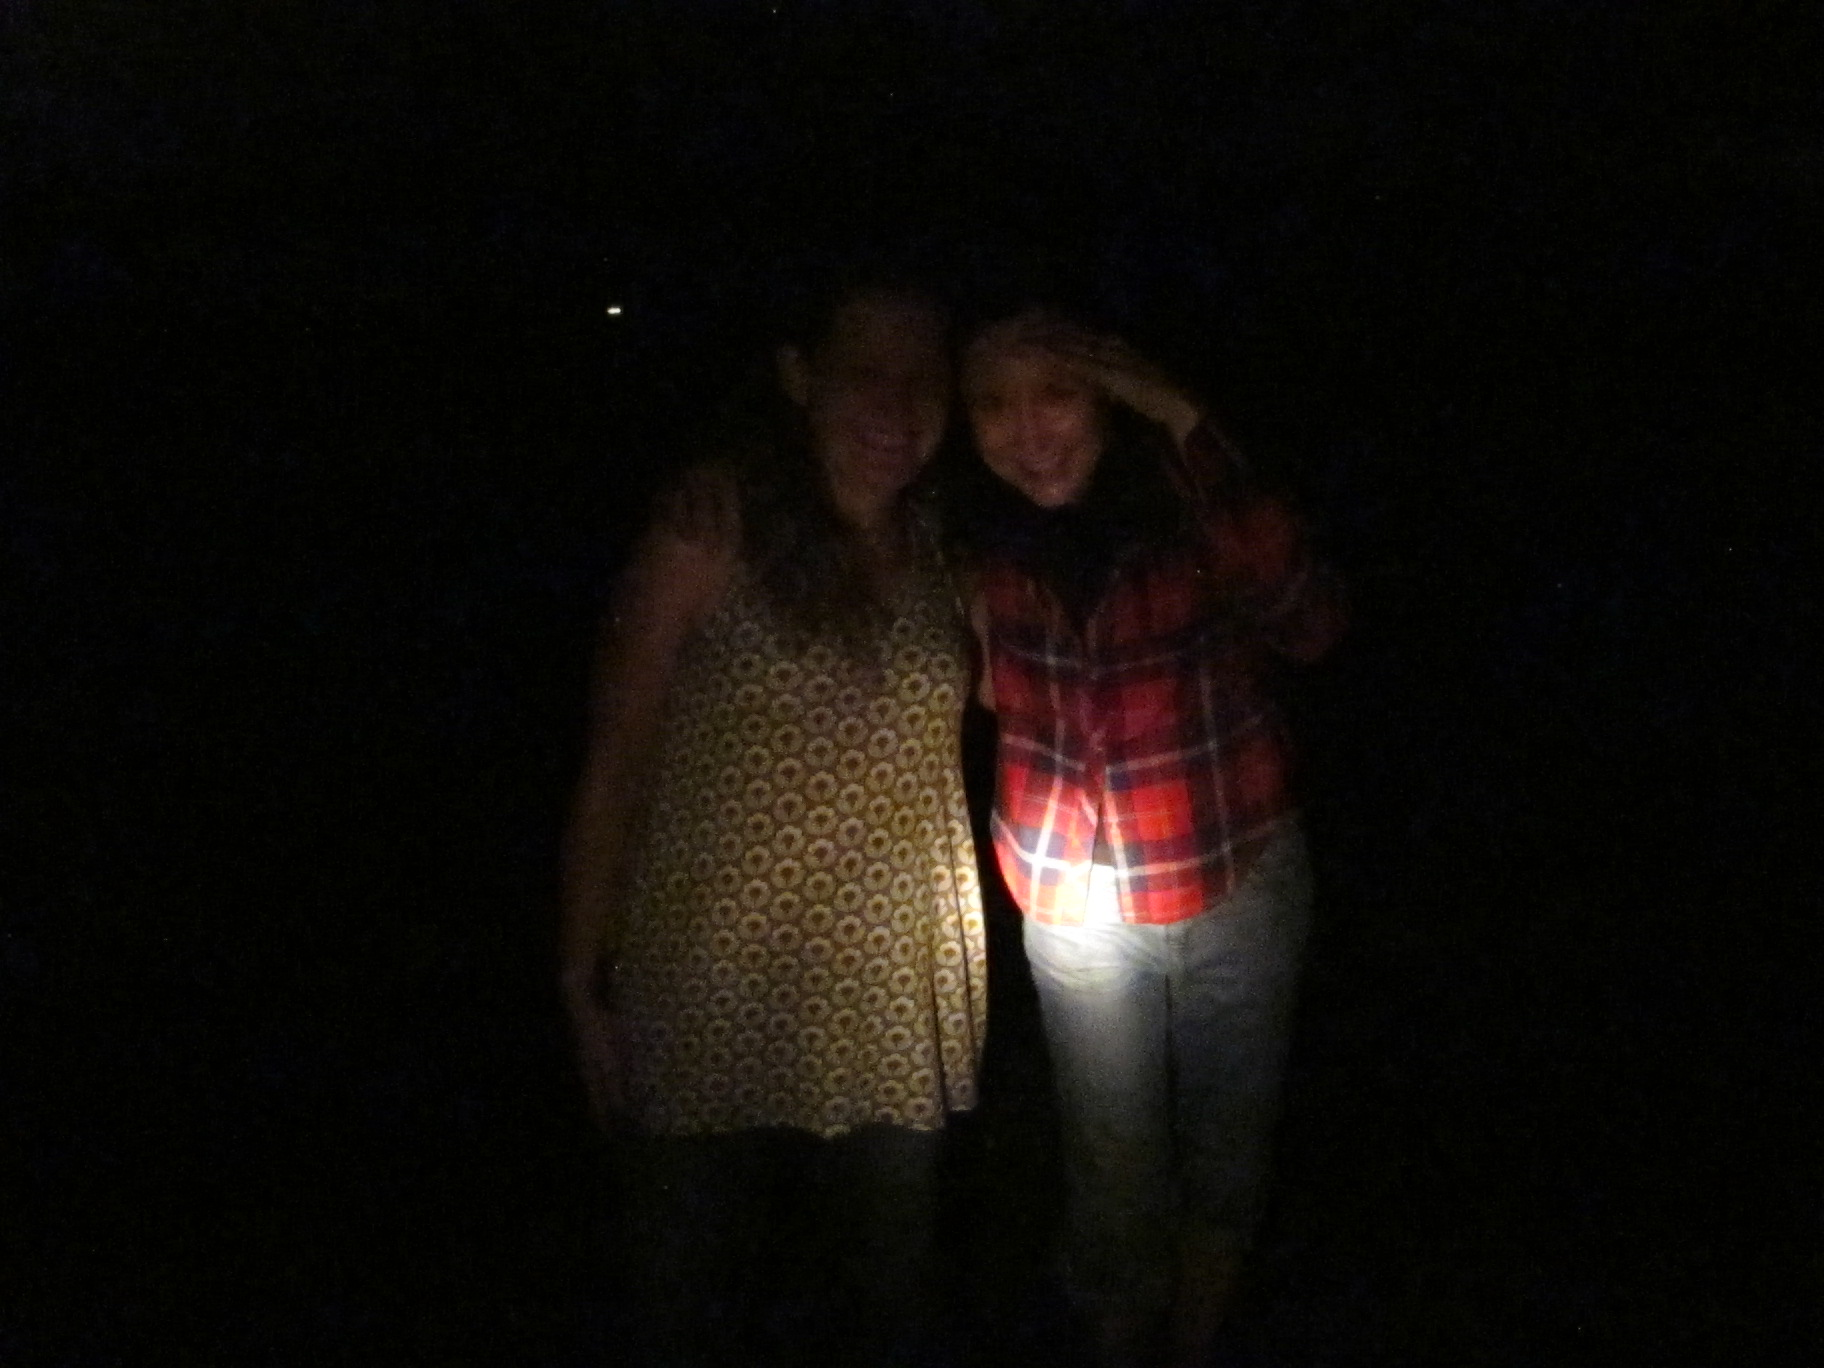 Two of our night explorers, Lisa and Pamelia, illuminated by flashlight, not phytoplankton.